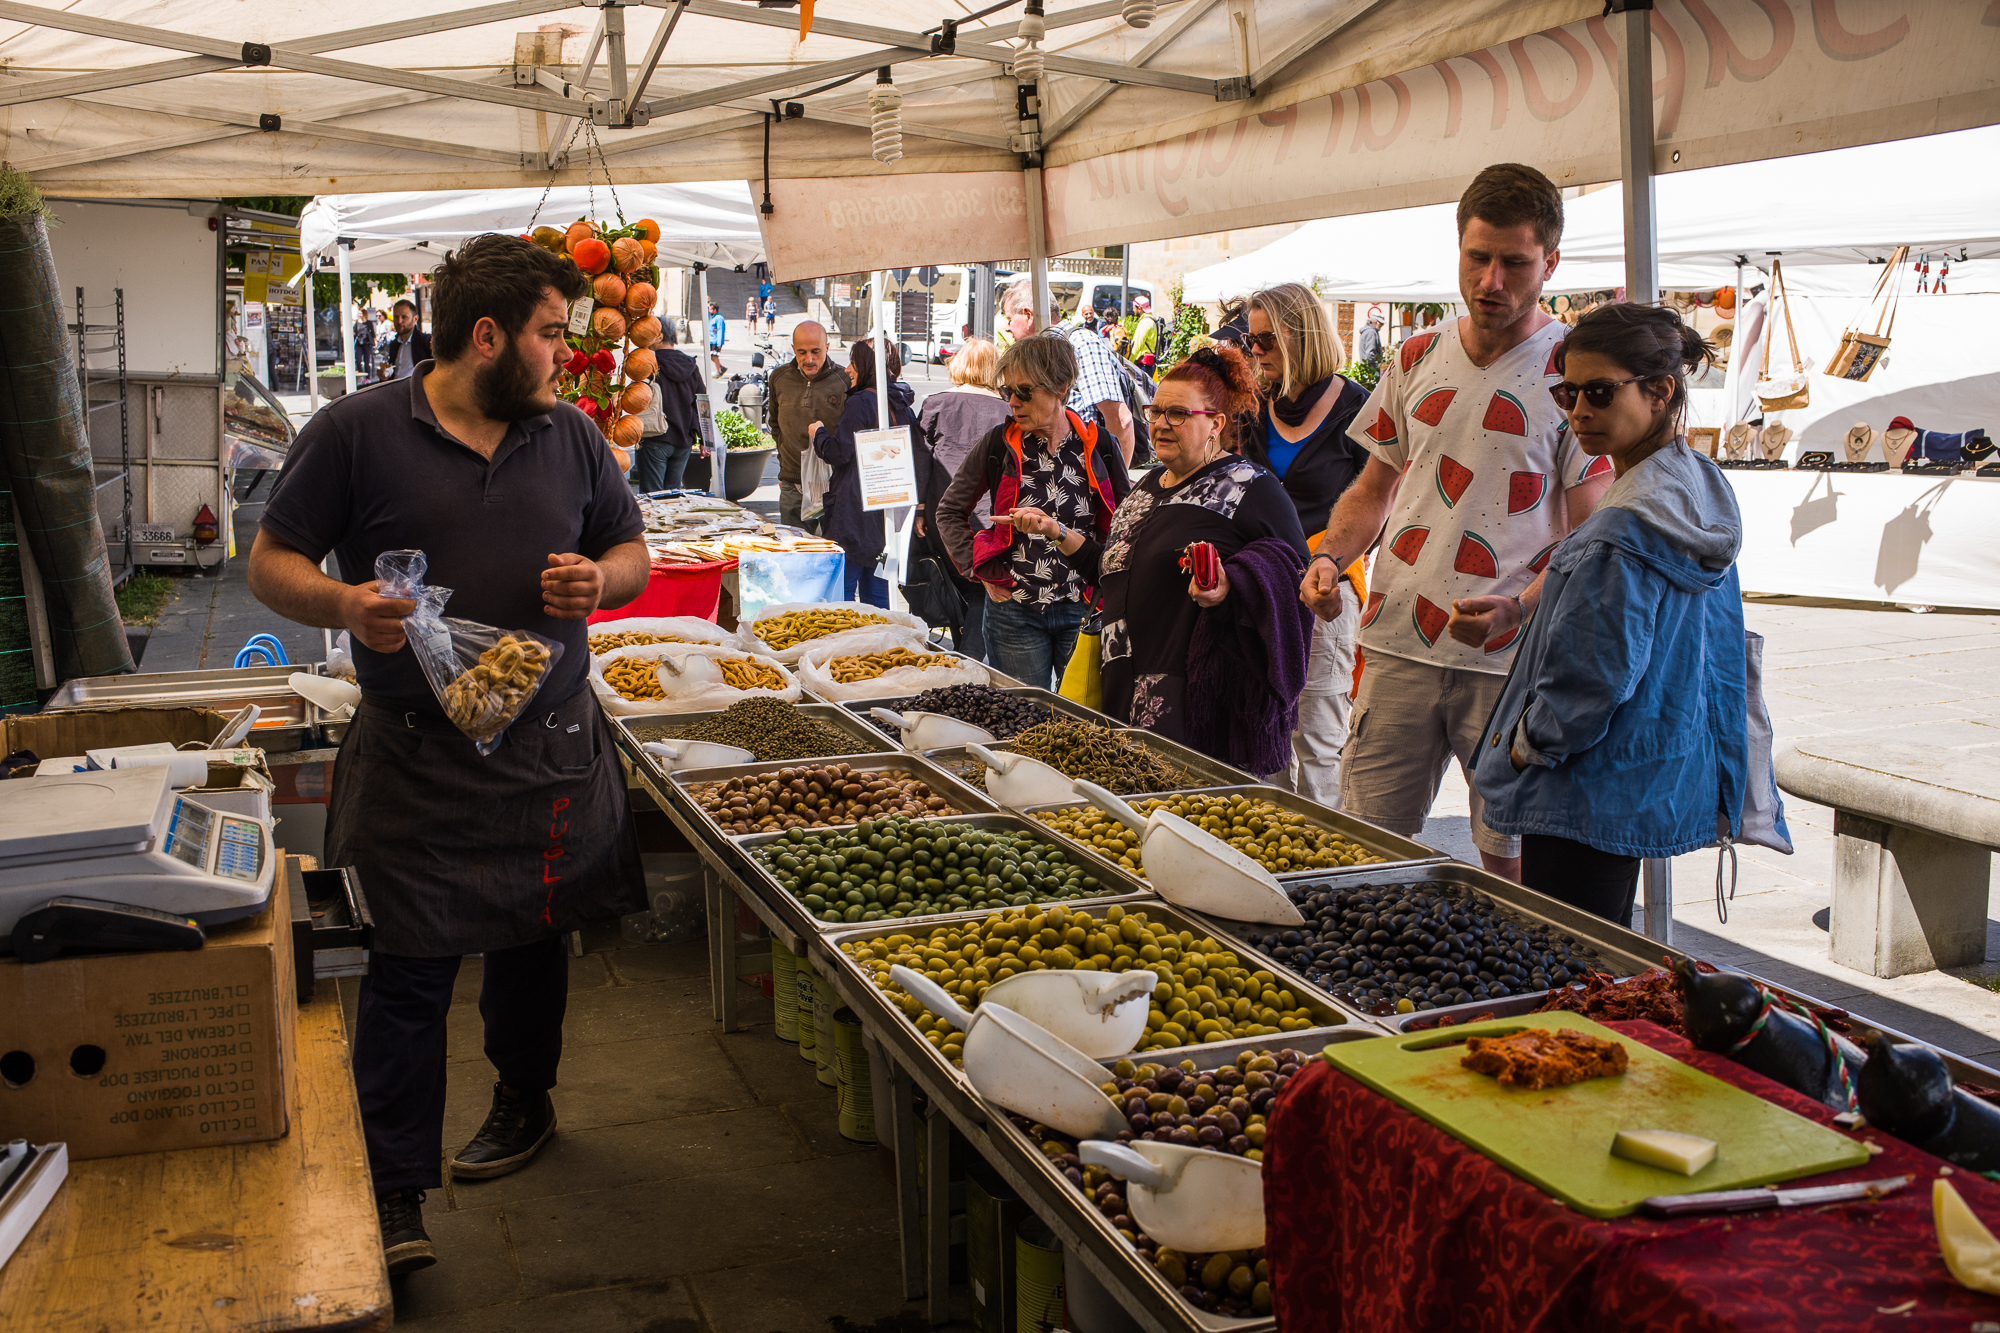 Buying olives in the market